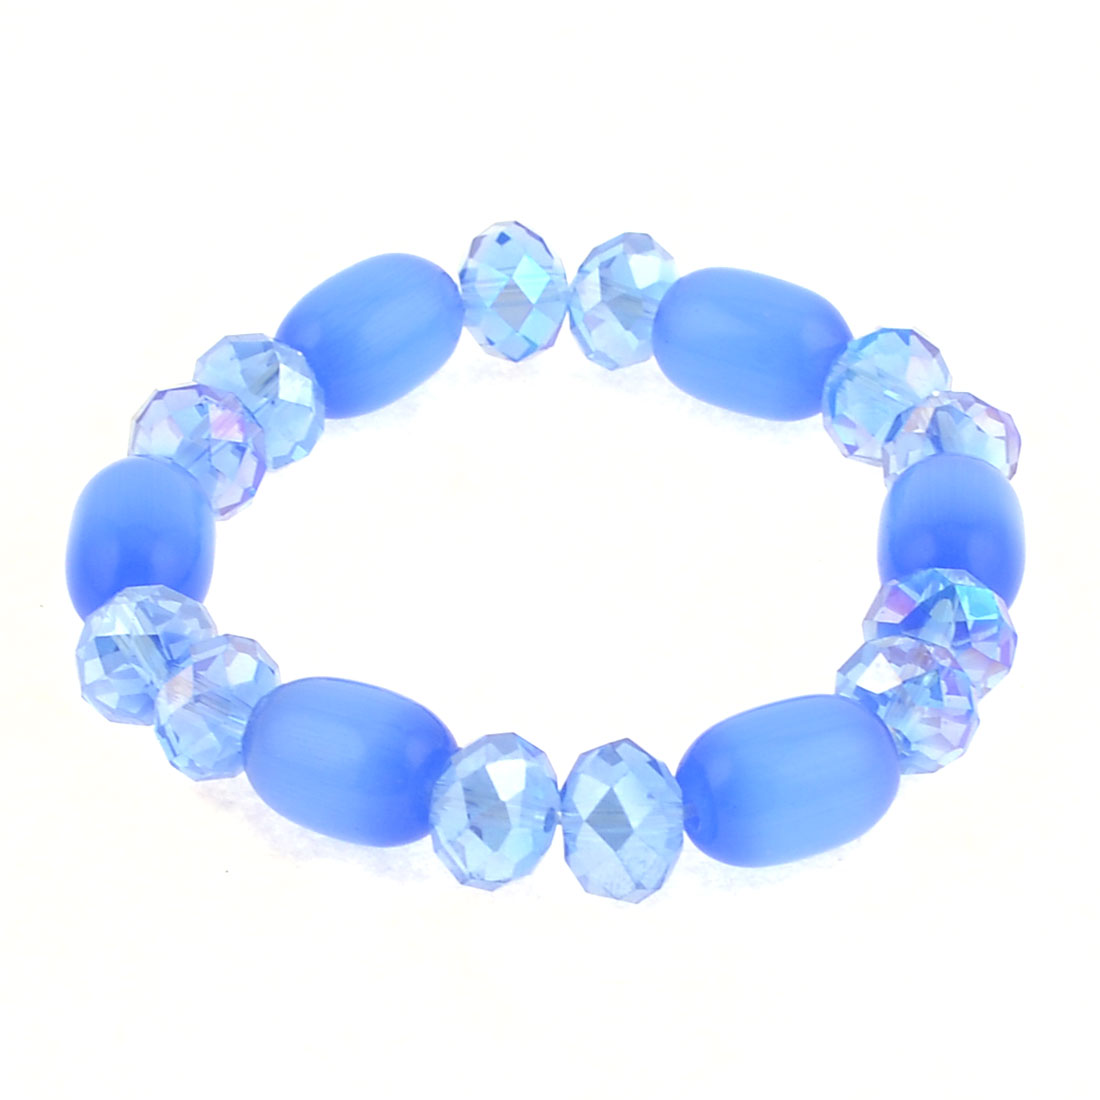 Party Blue Faux Beaded Stretching Wrist Bracelet Jewelry for Women